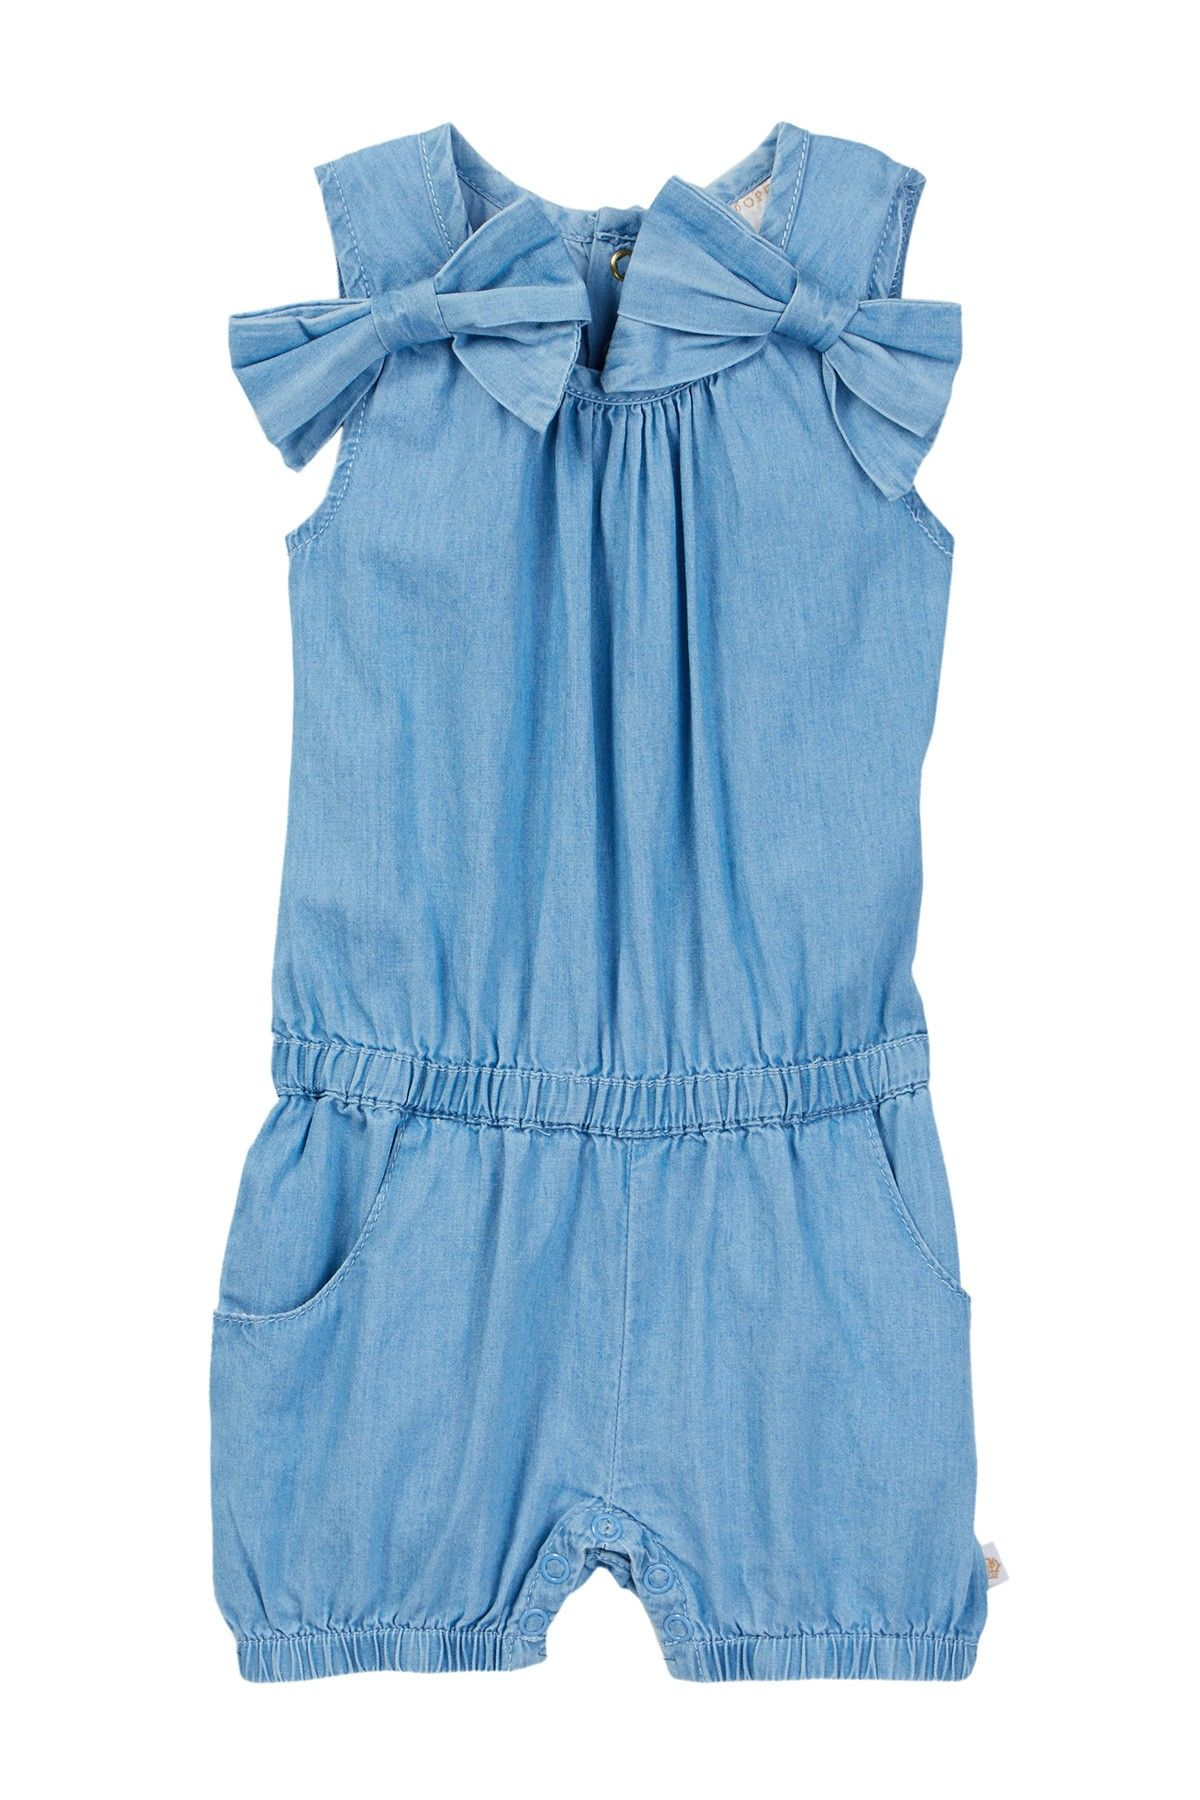 Rosie Pope Chambray Romper Baby Girls